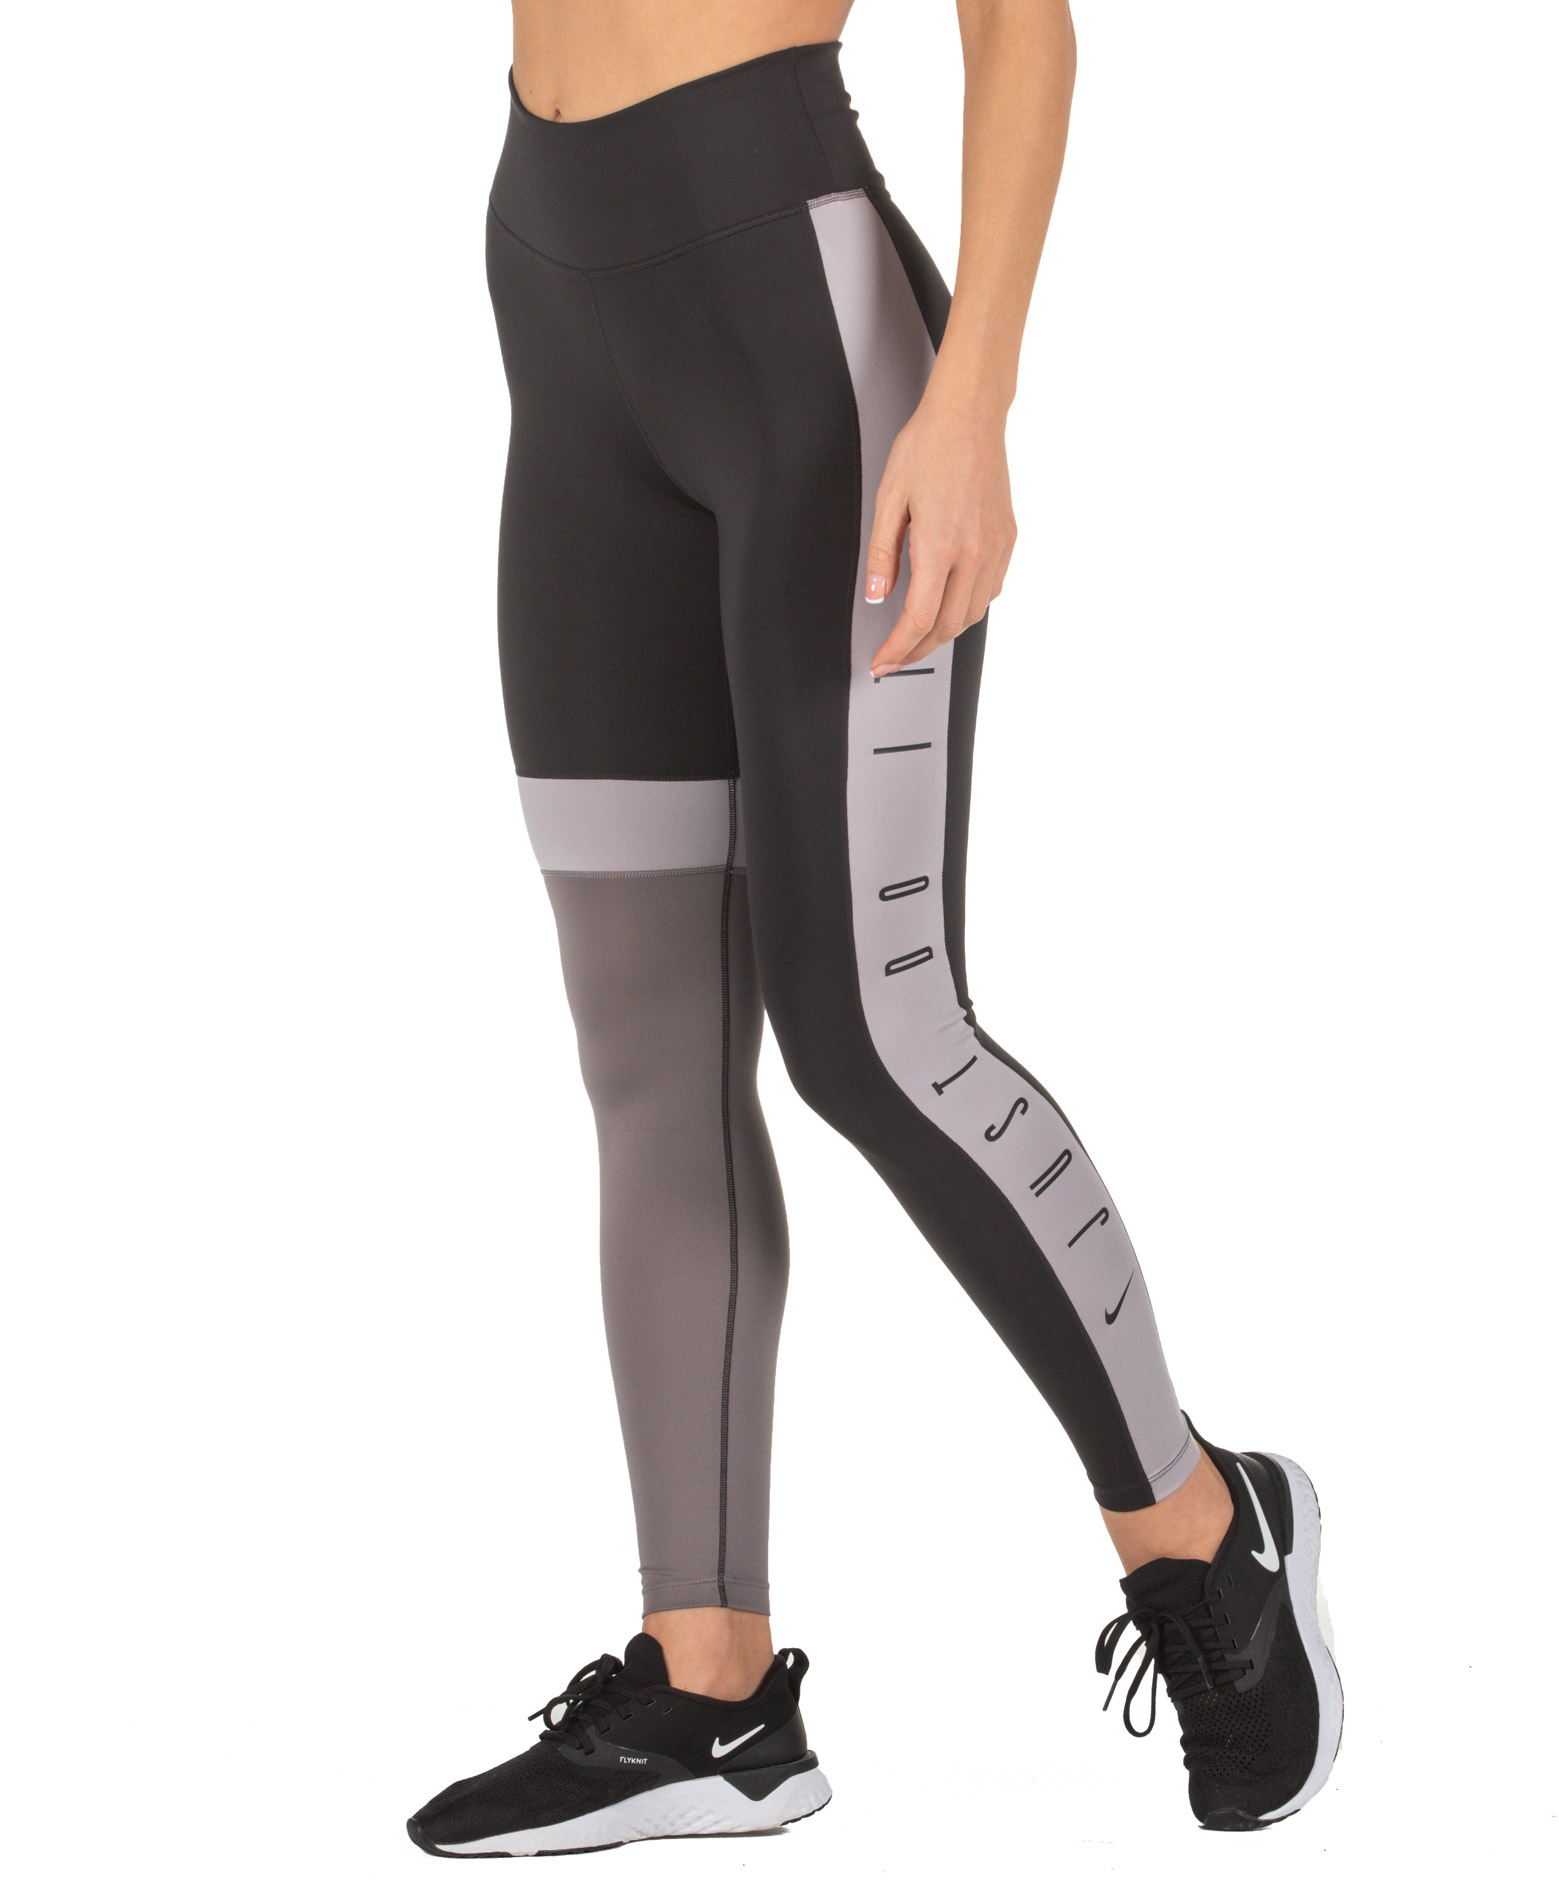 NIKE ONE WOMEN'S 7/8 TIGHTS BV5725-010 Μαύρο